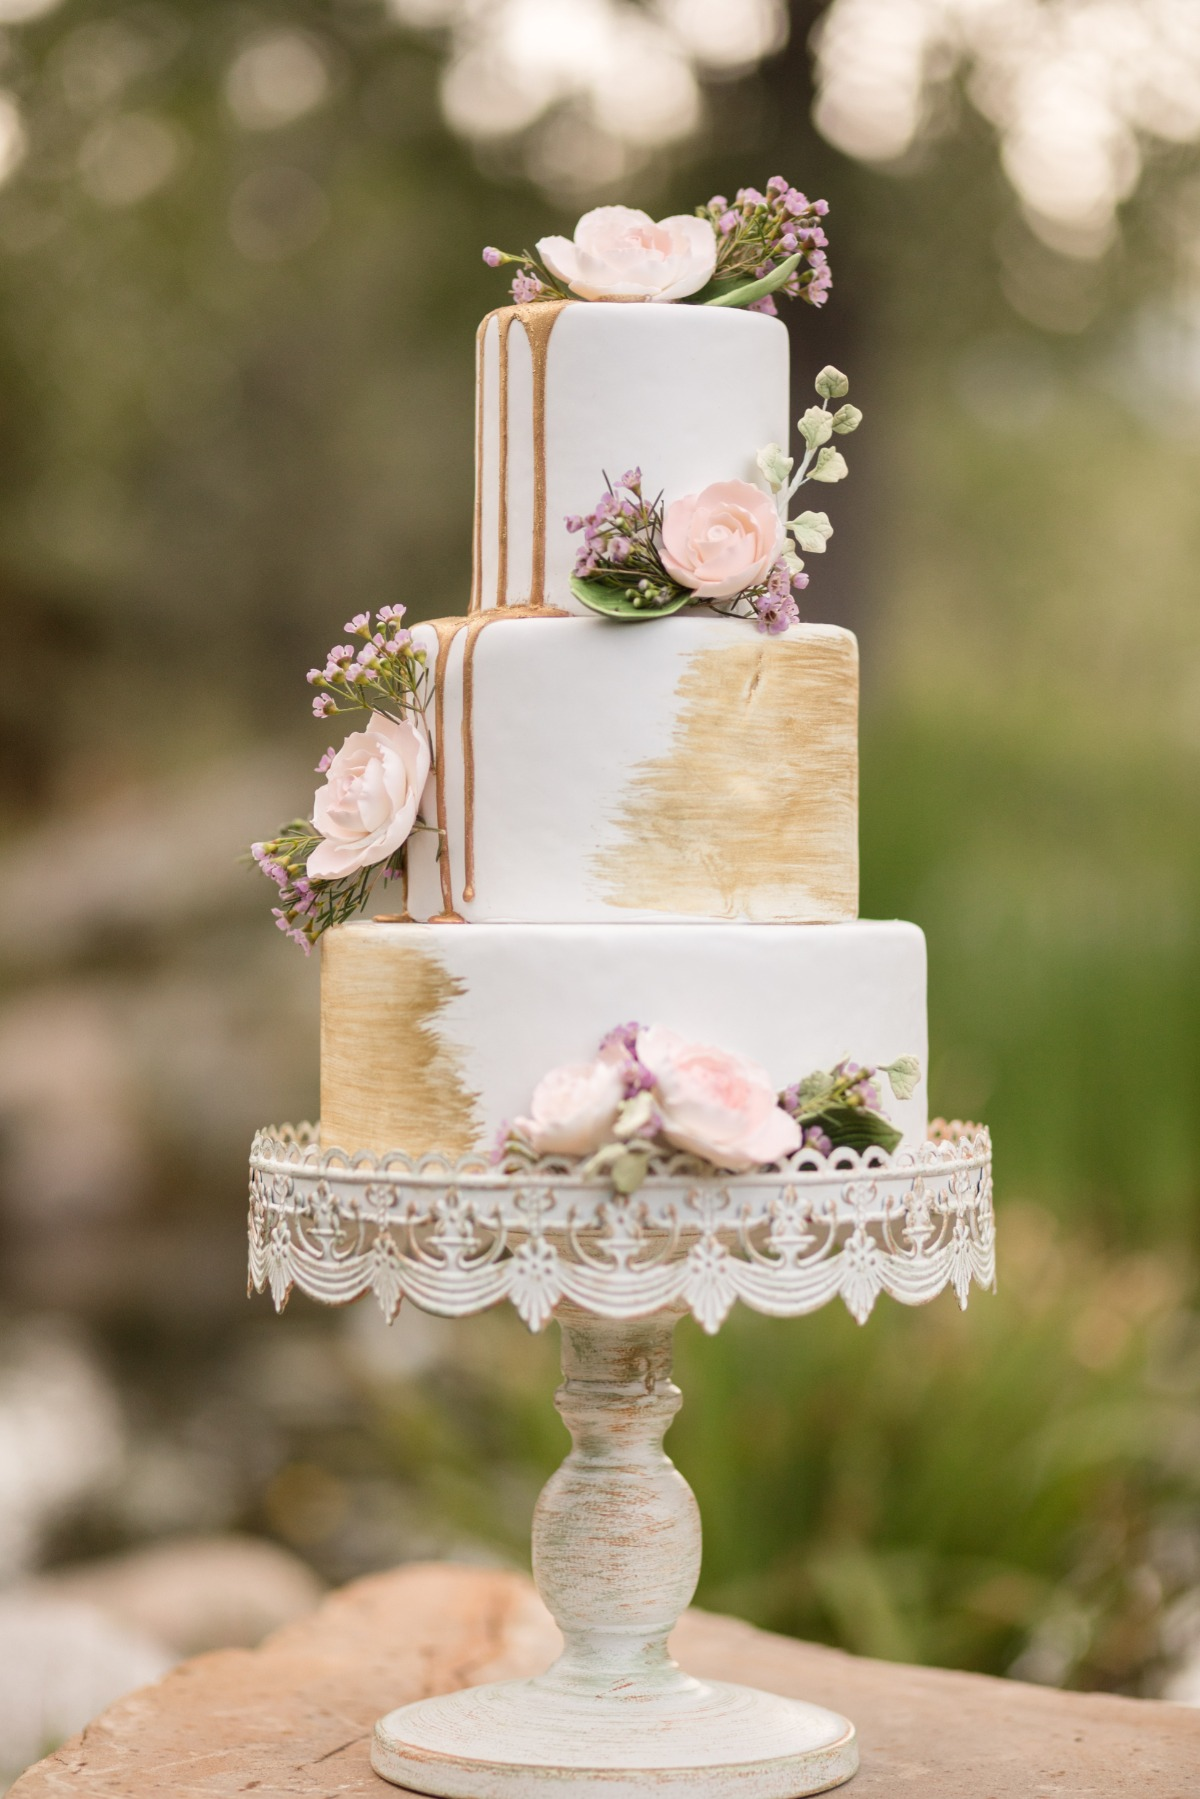 gold brushed and drizzled wedding cake